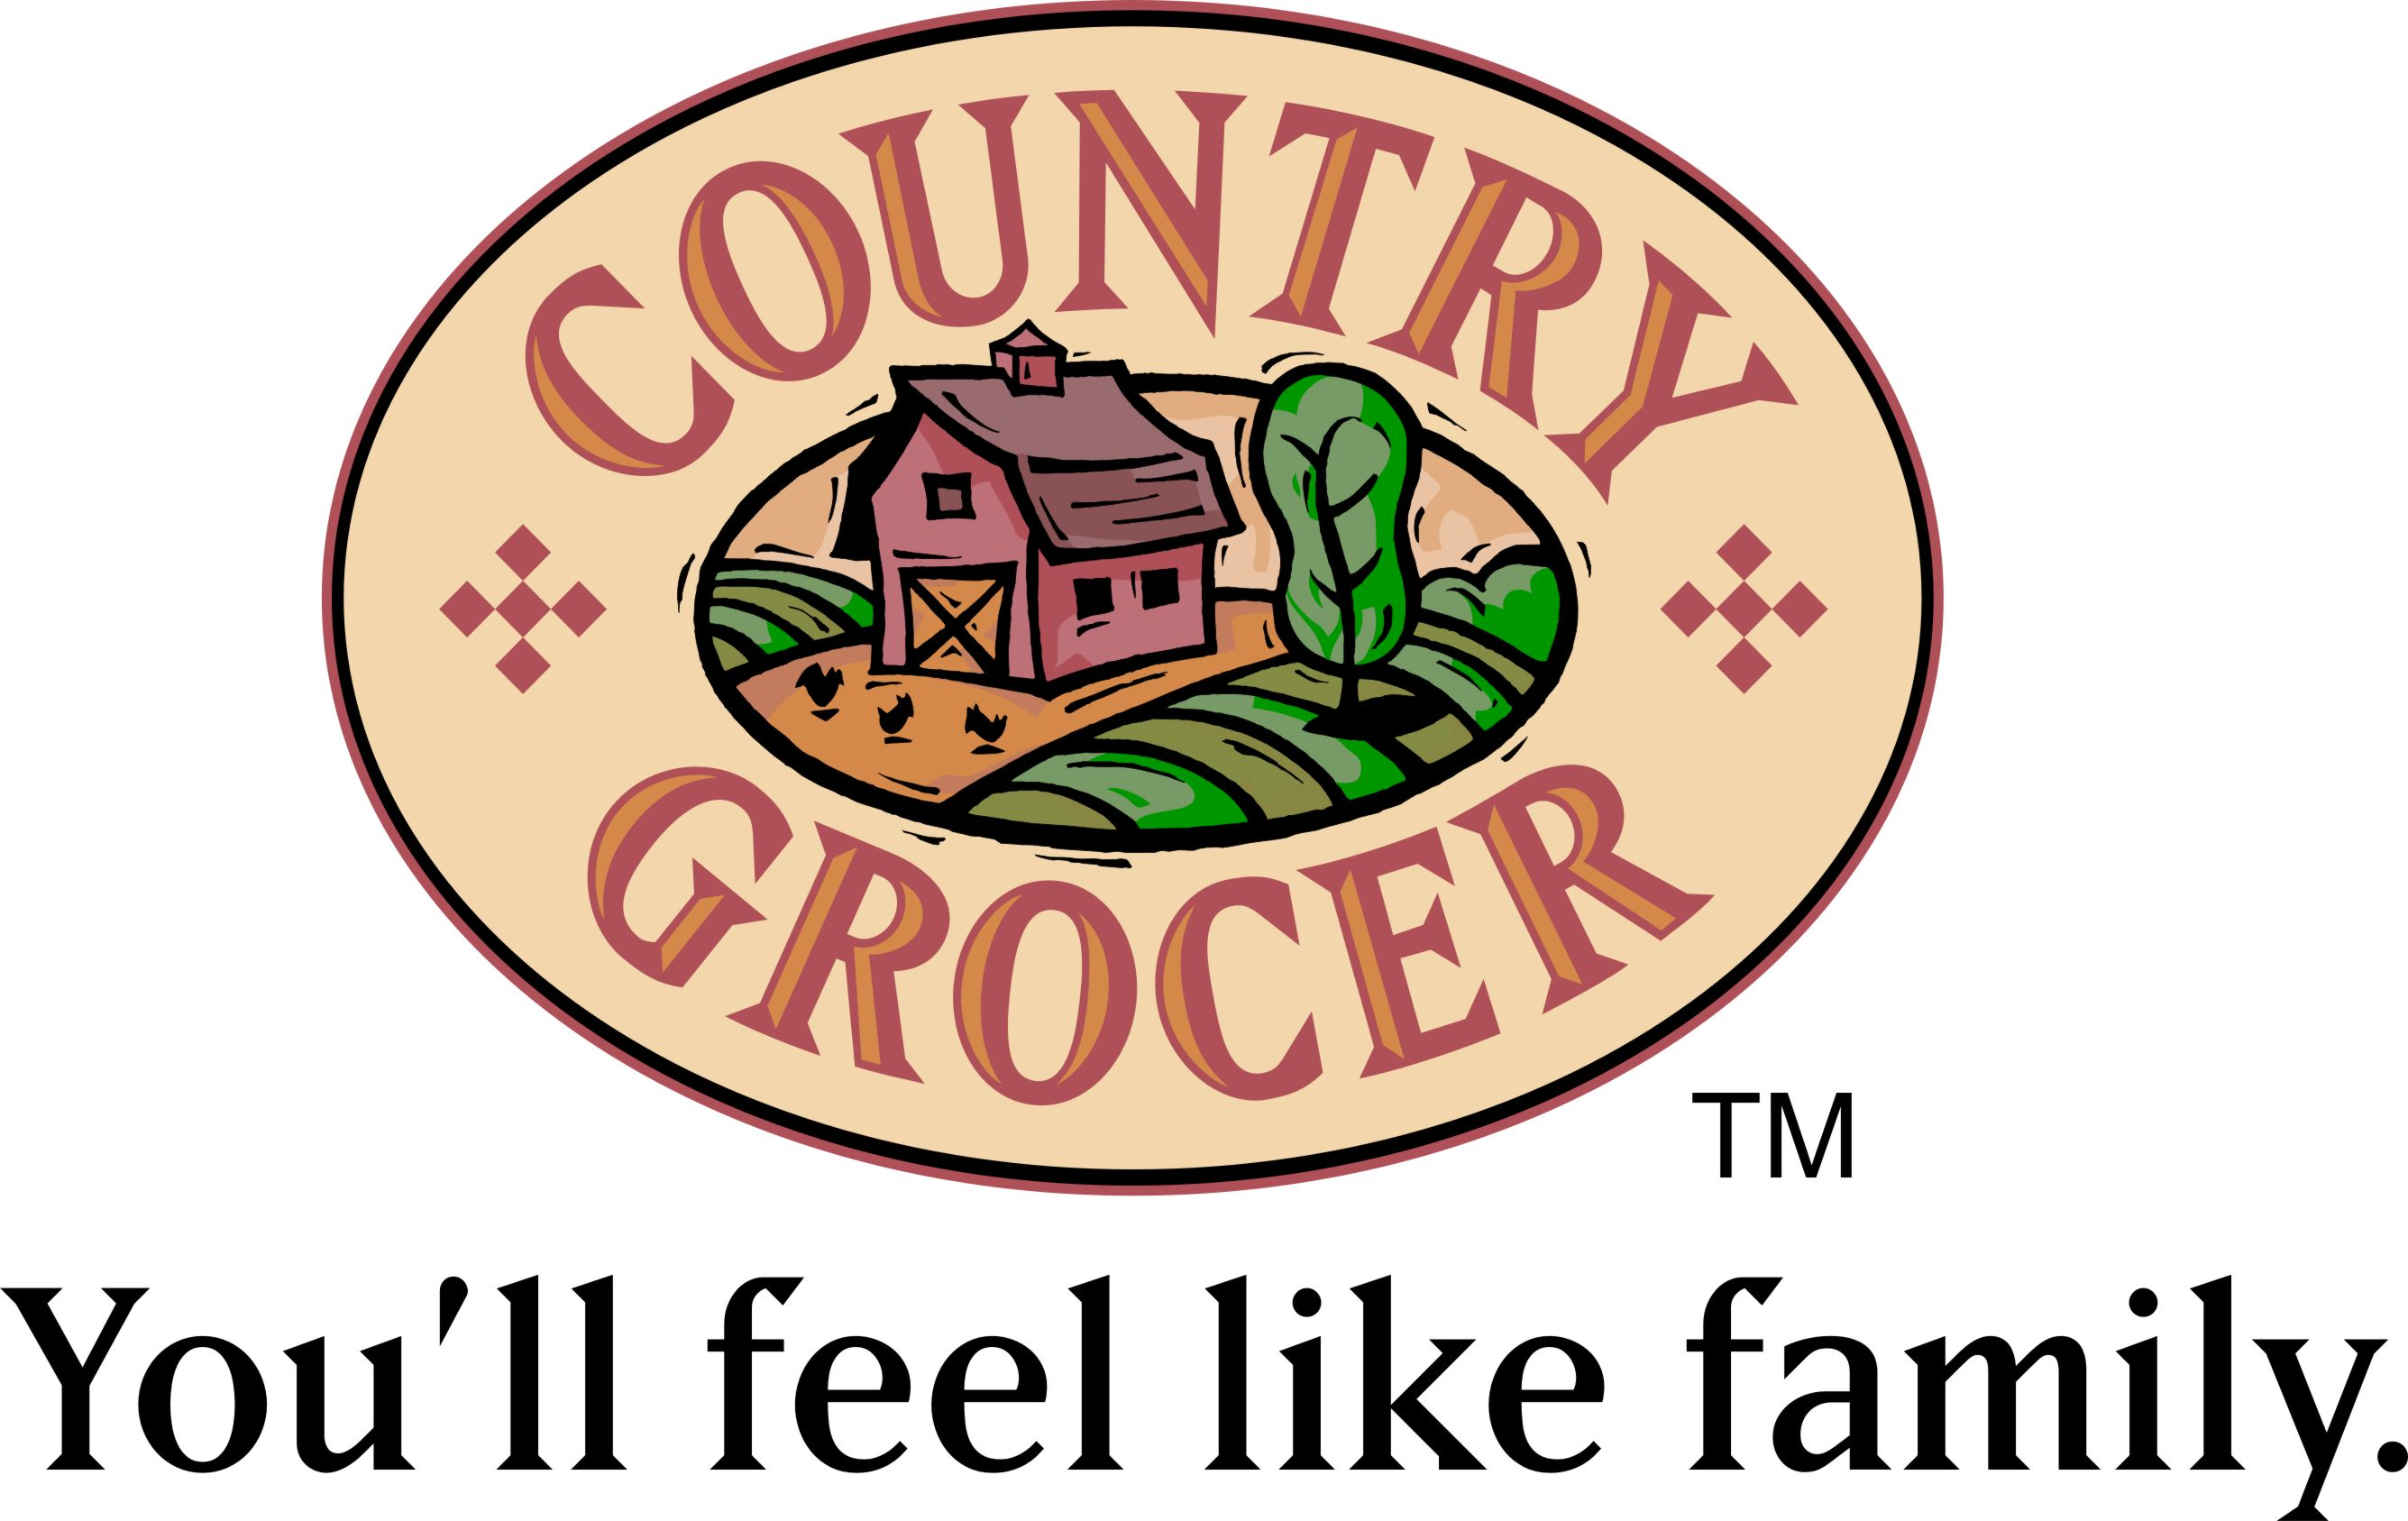 country_grocer